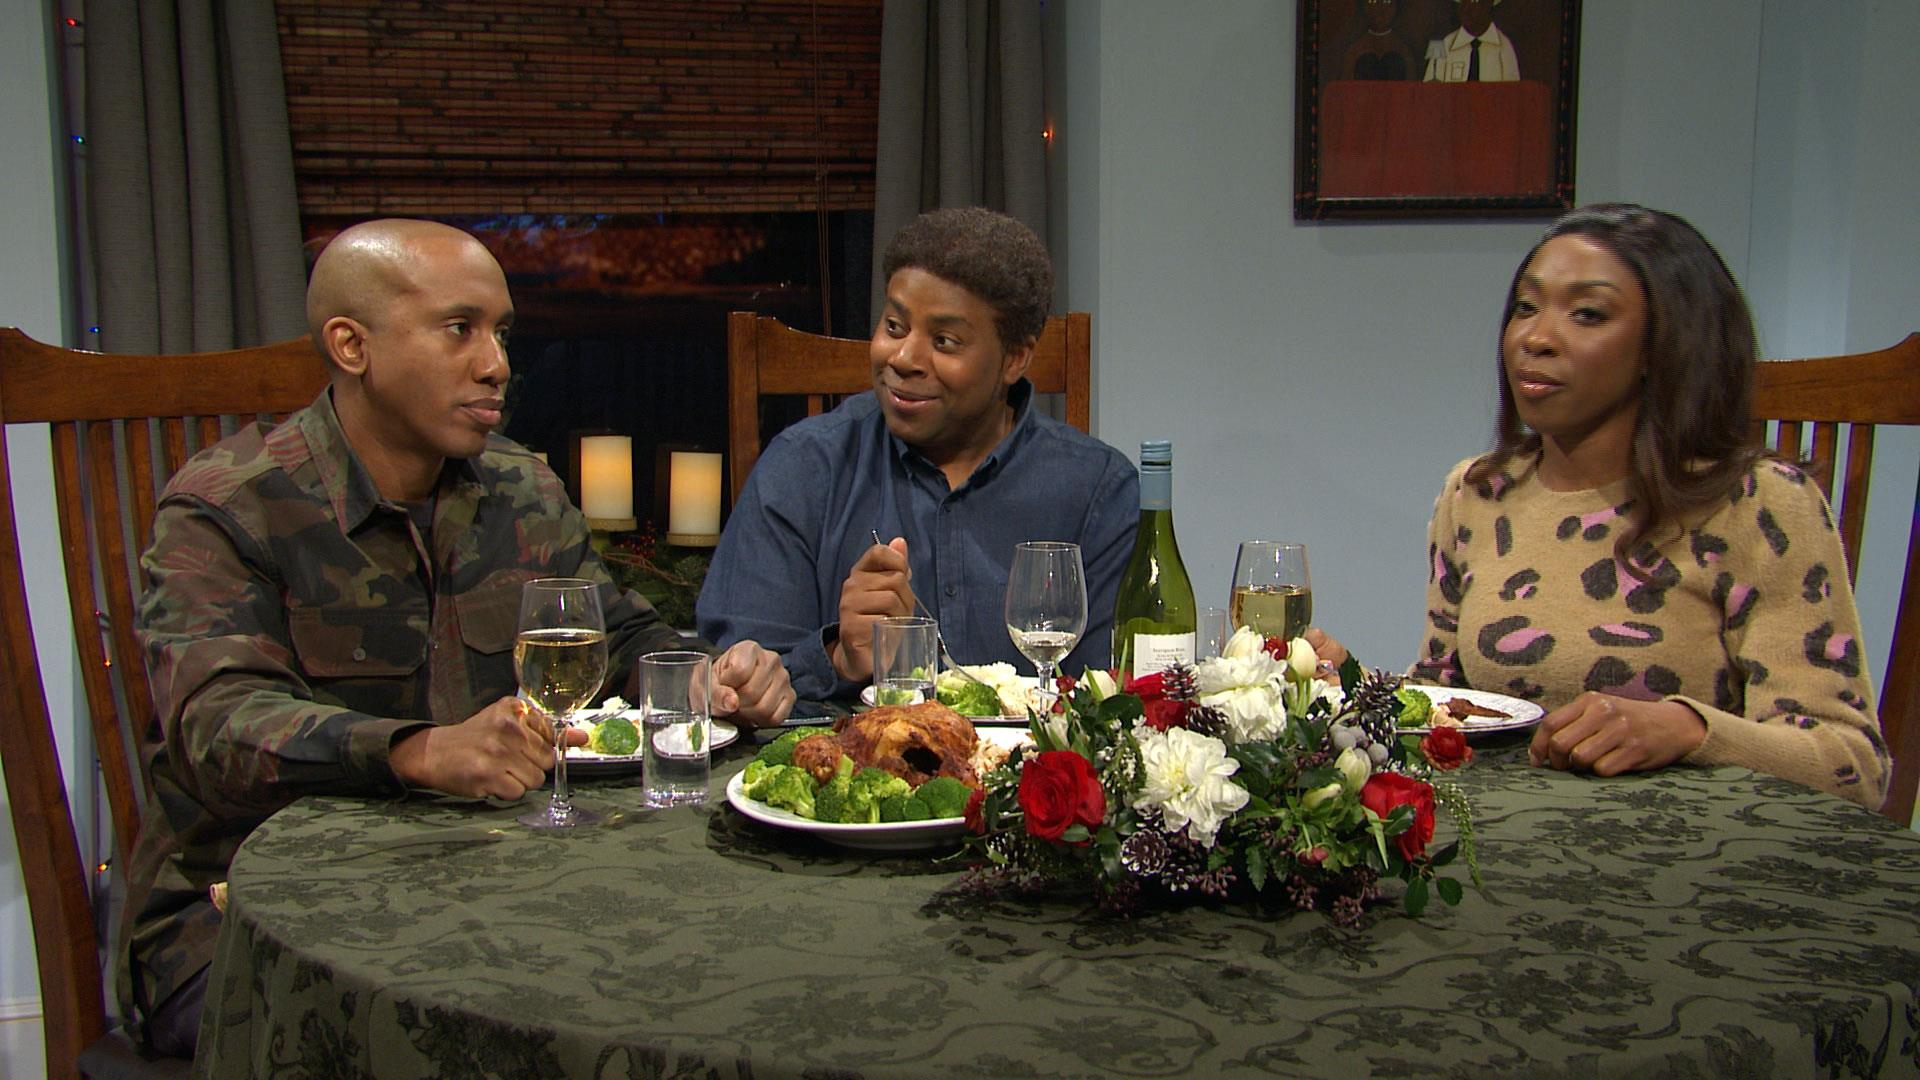 'SNL' looks at the holiday dinner table during impeachment